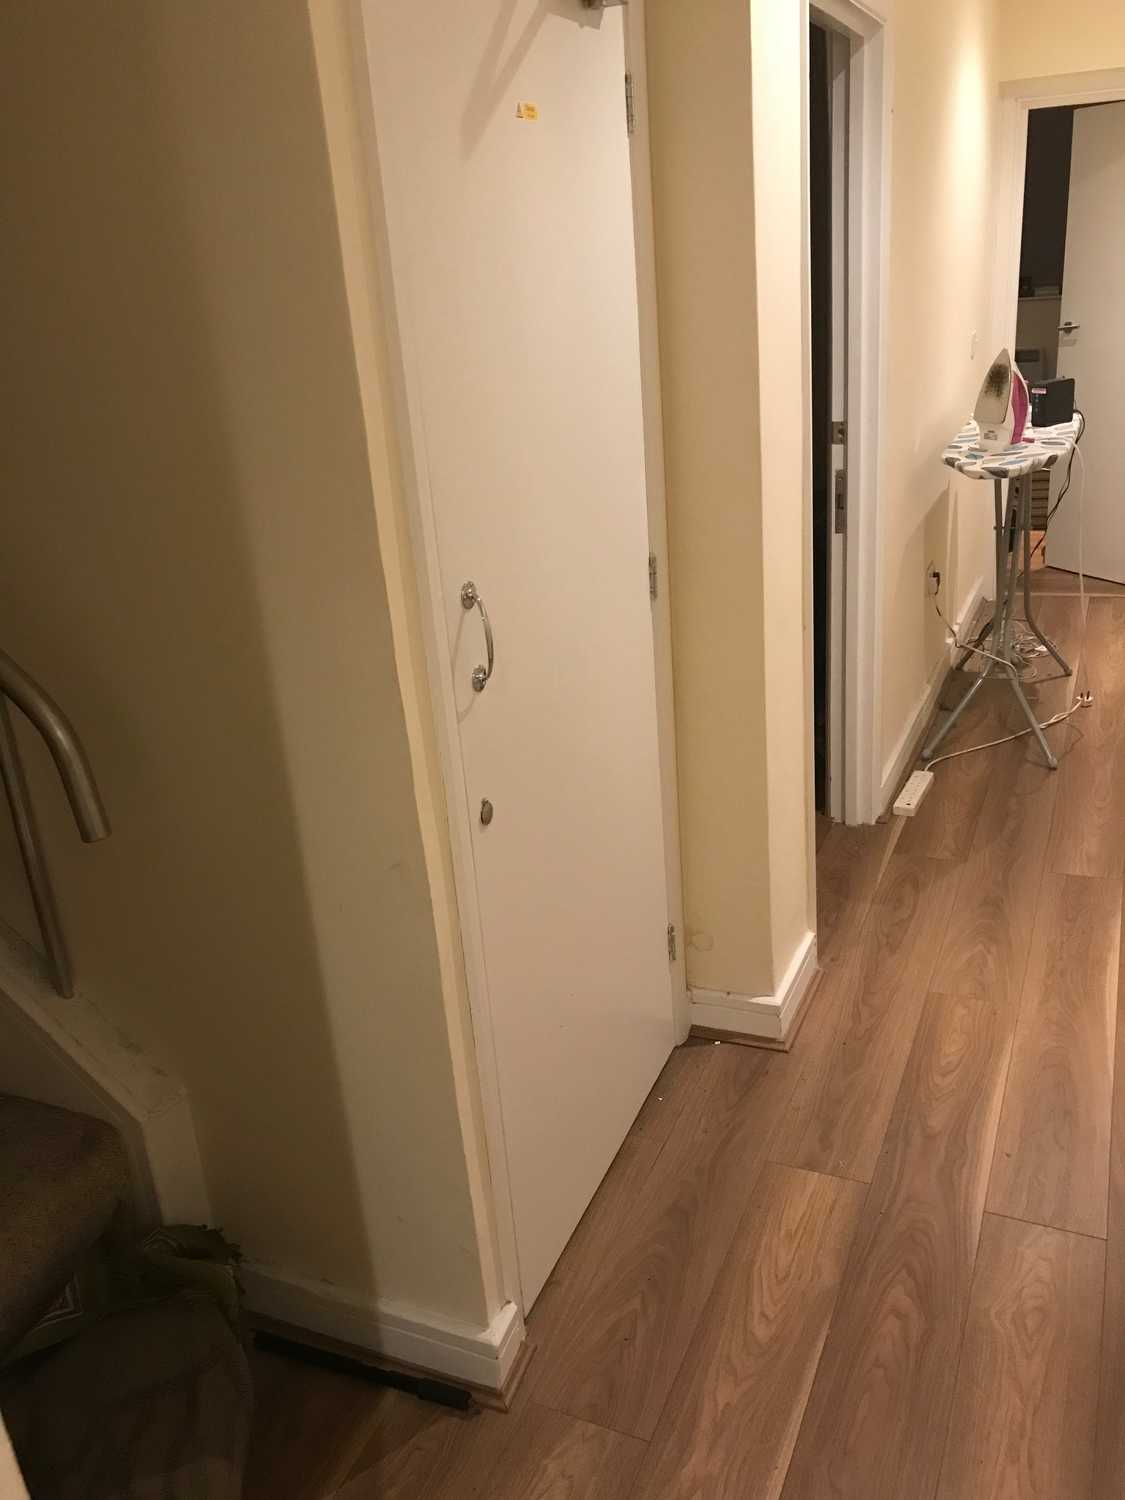 Photo of a double bed ensuite room in 2-bedroom flat in Kensington, London.